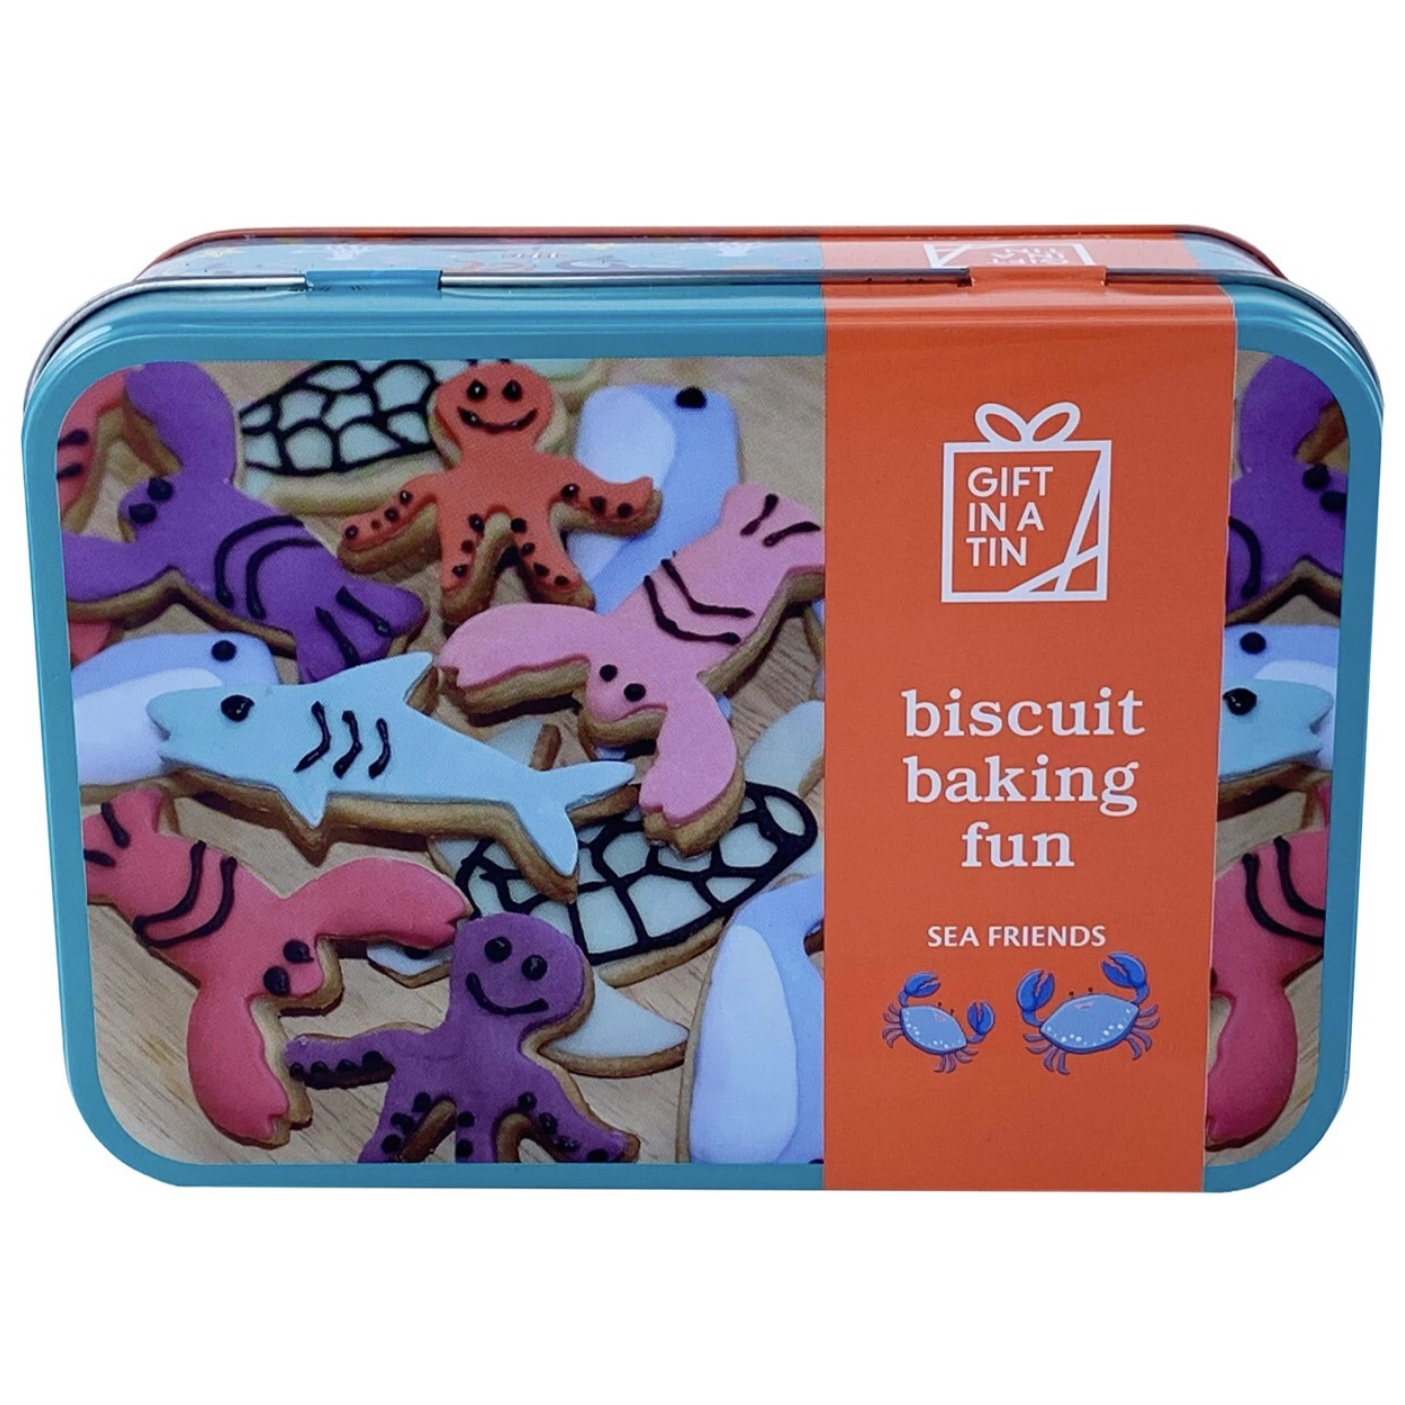 'Biscuit Baking Fun' Gift In A Tin